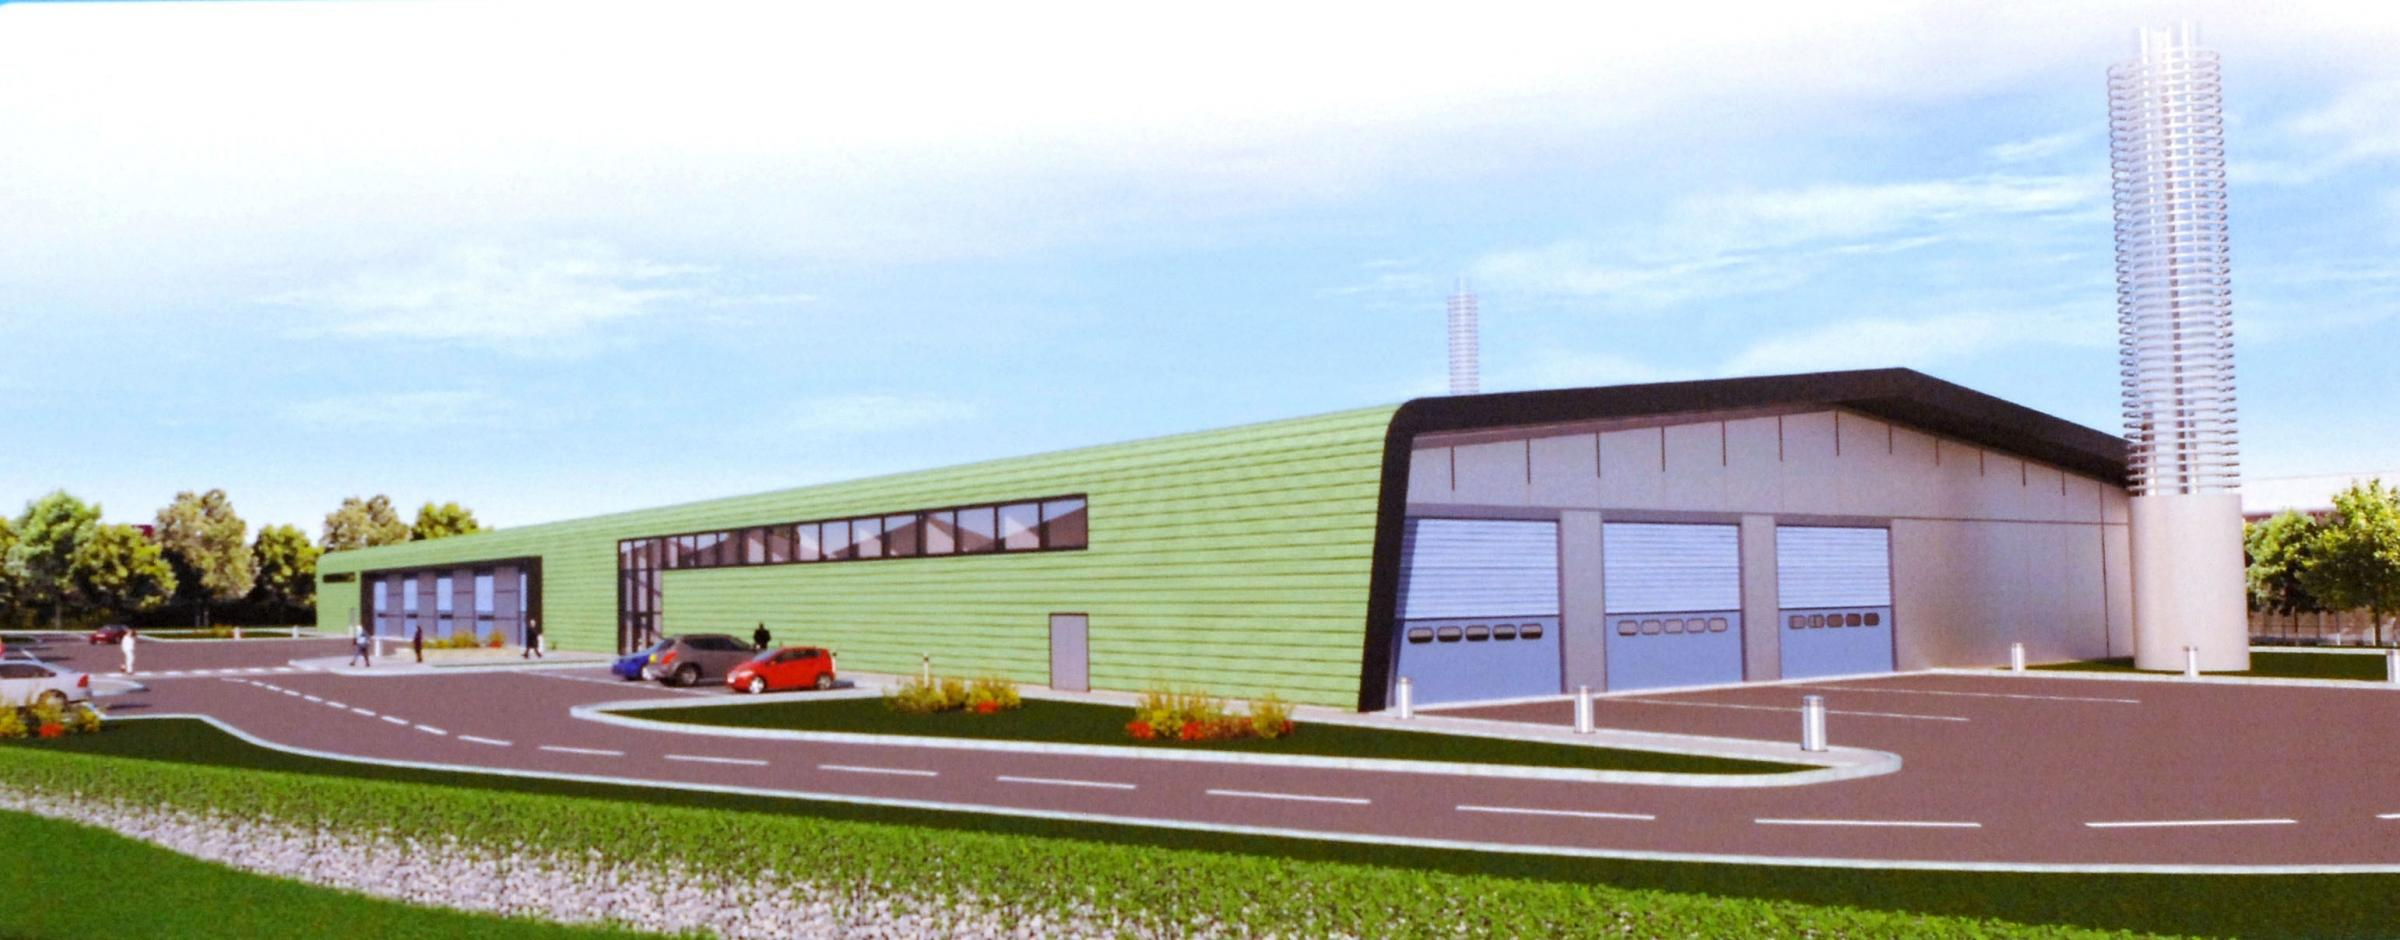 The proposed Clean Power indoor waste recycling centre